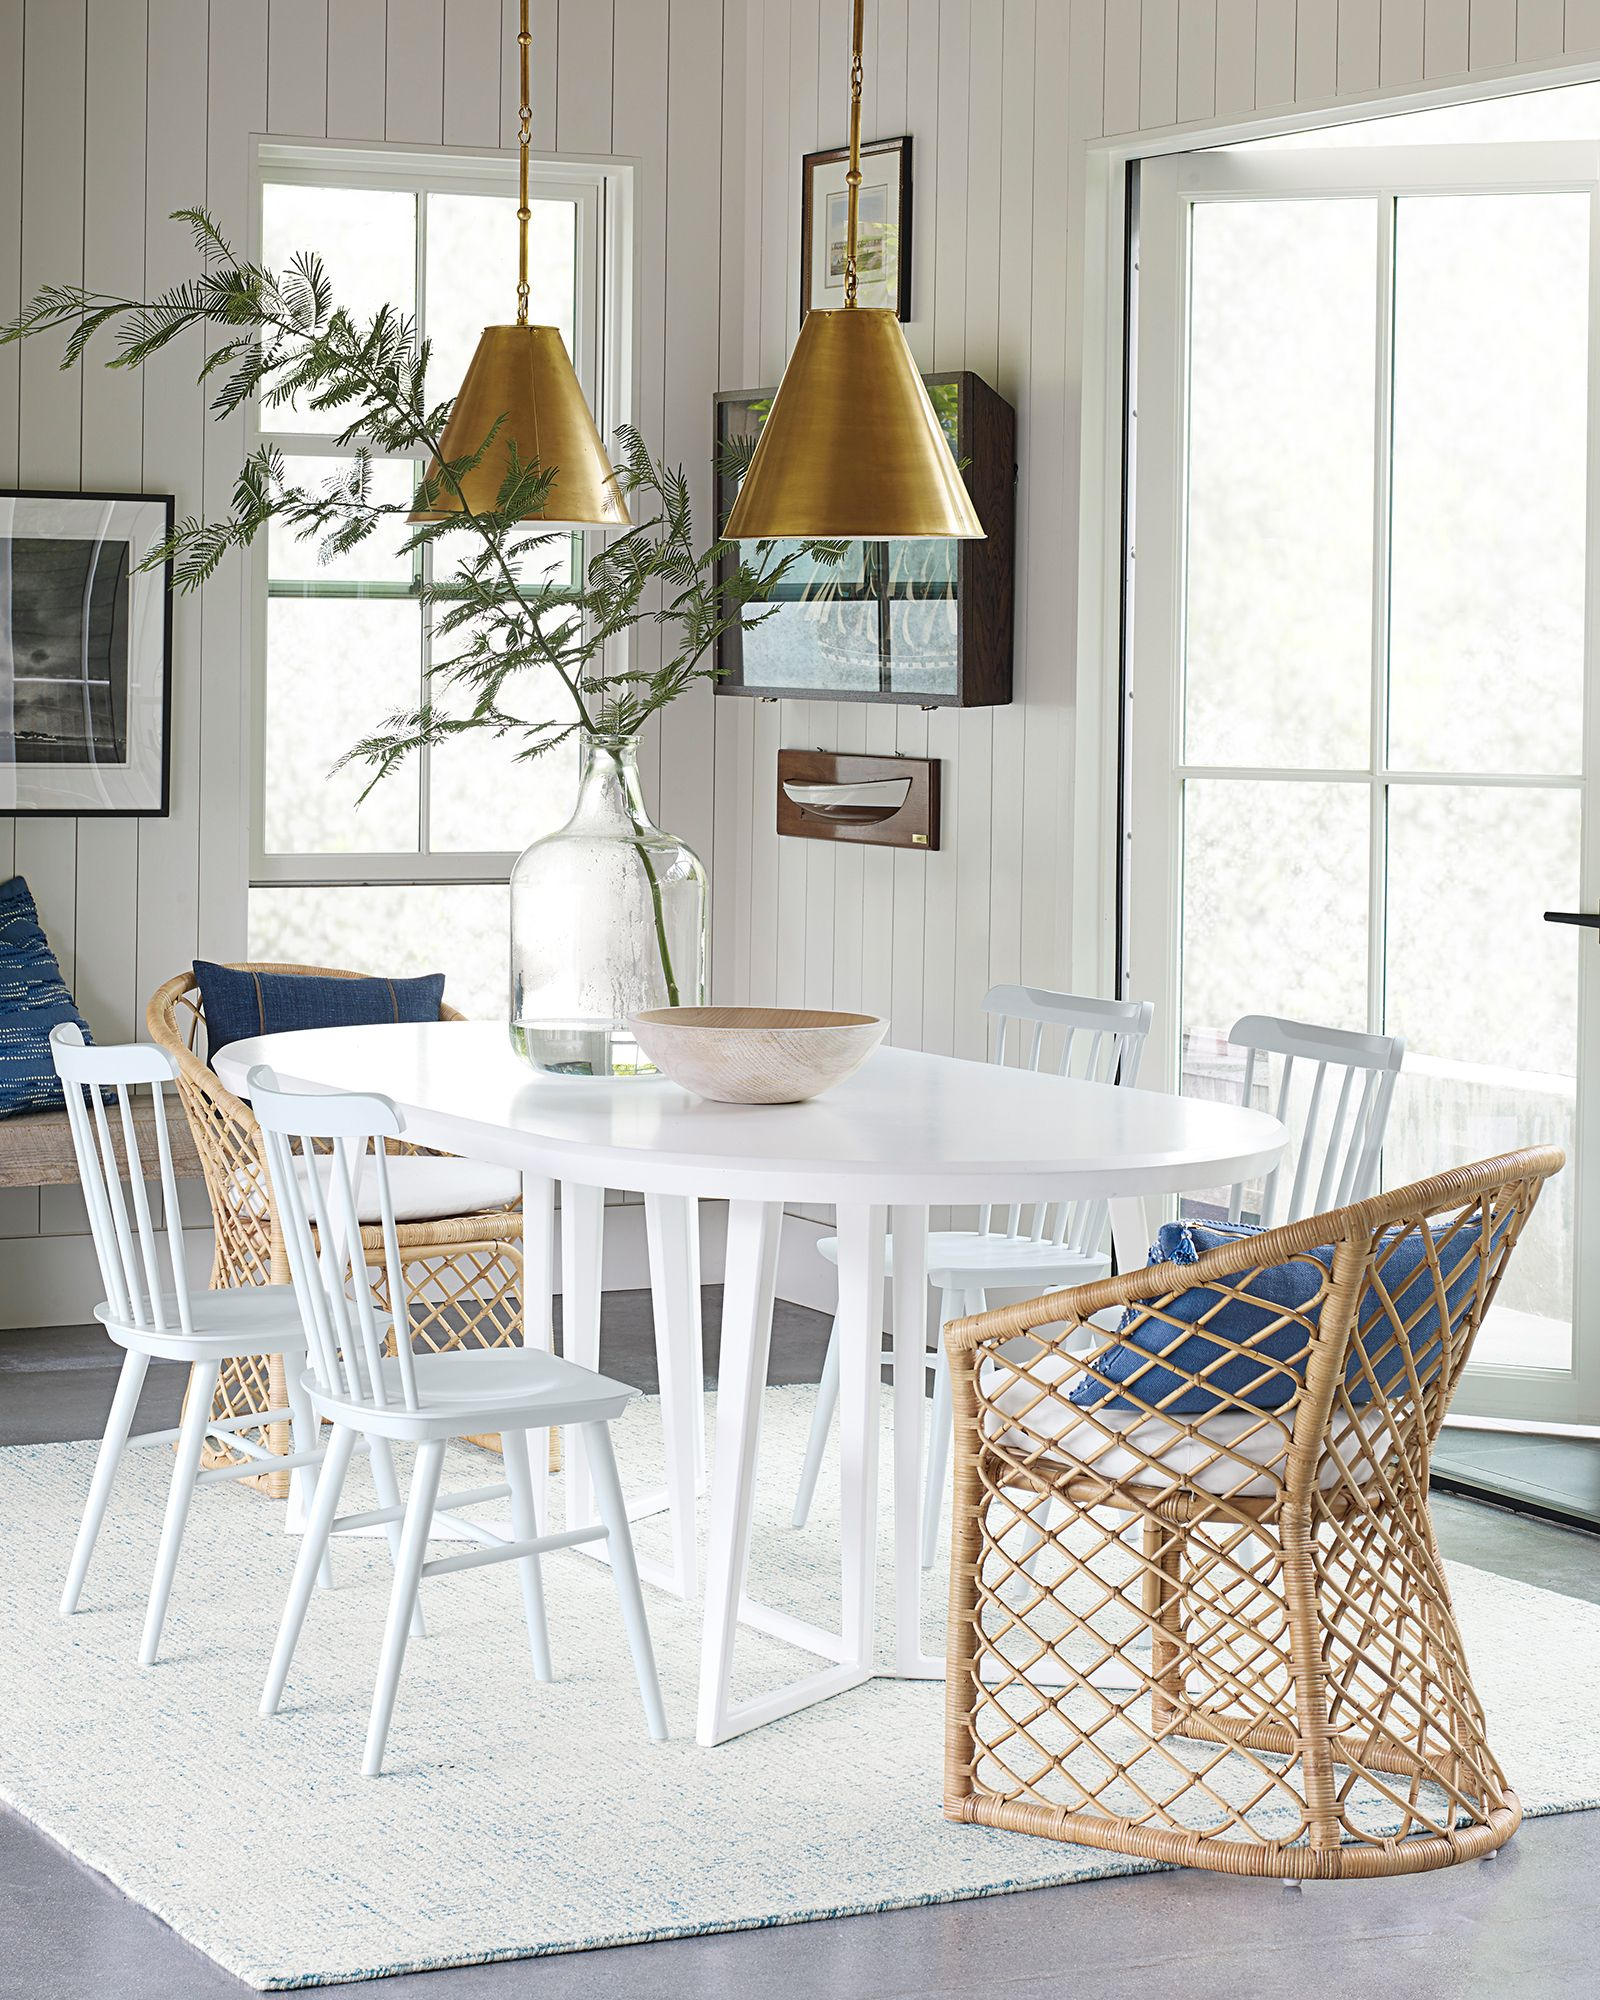 Avalon Dining Chair images